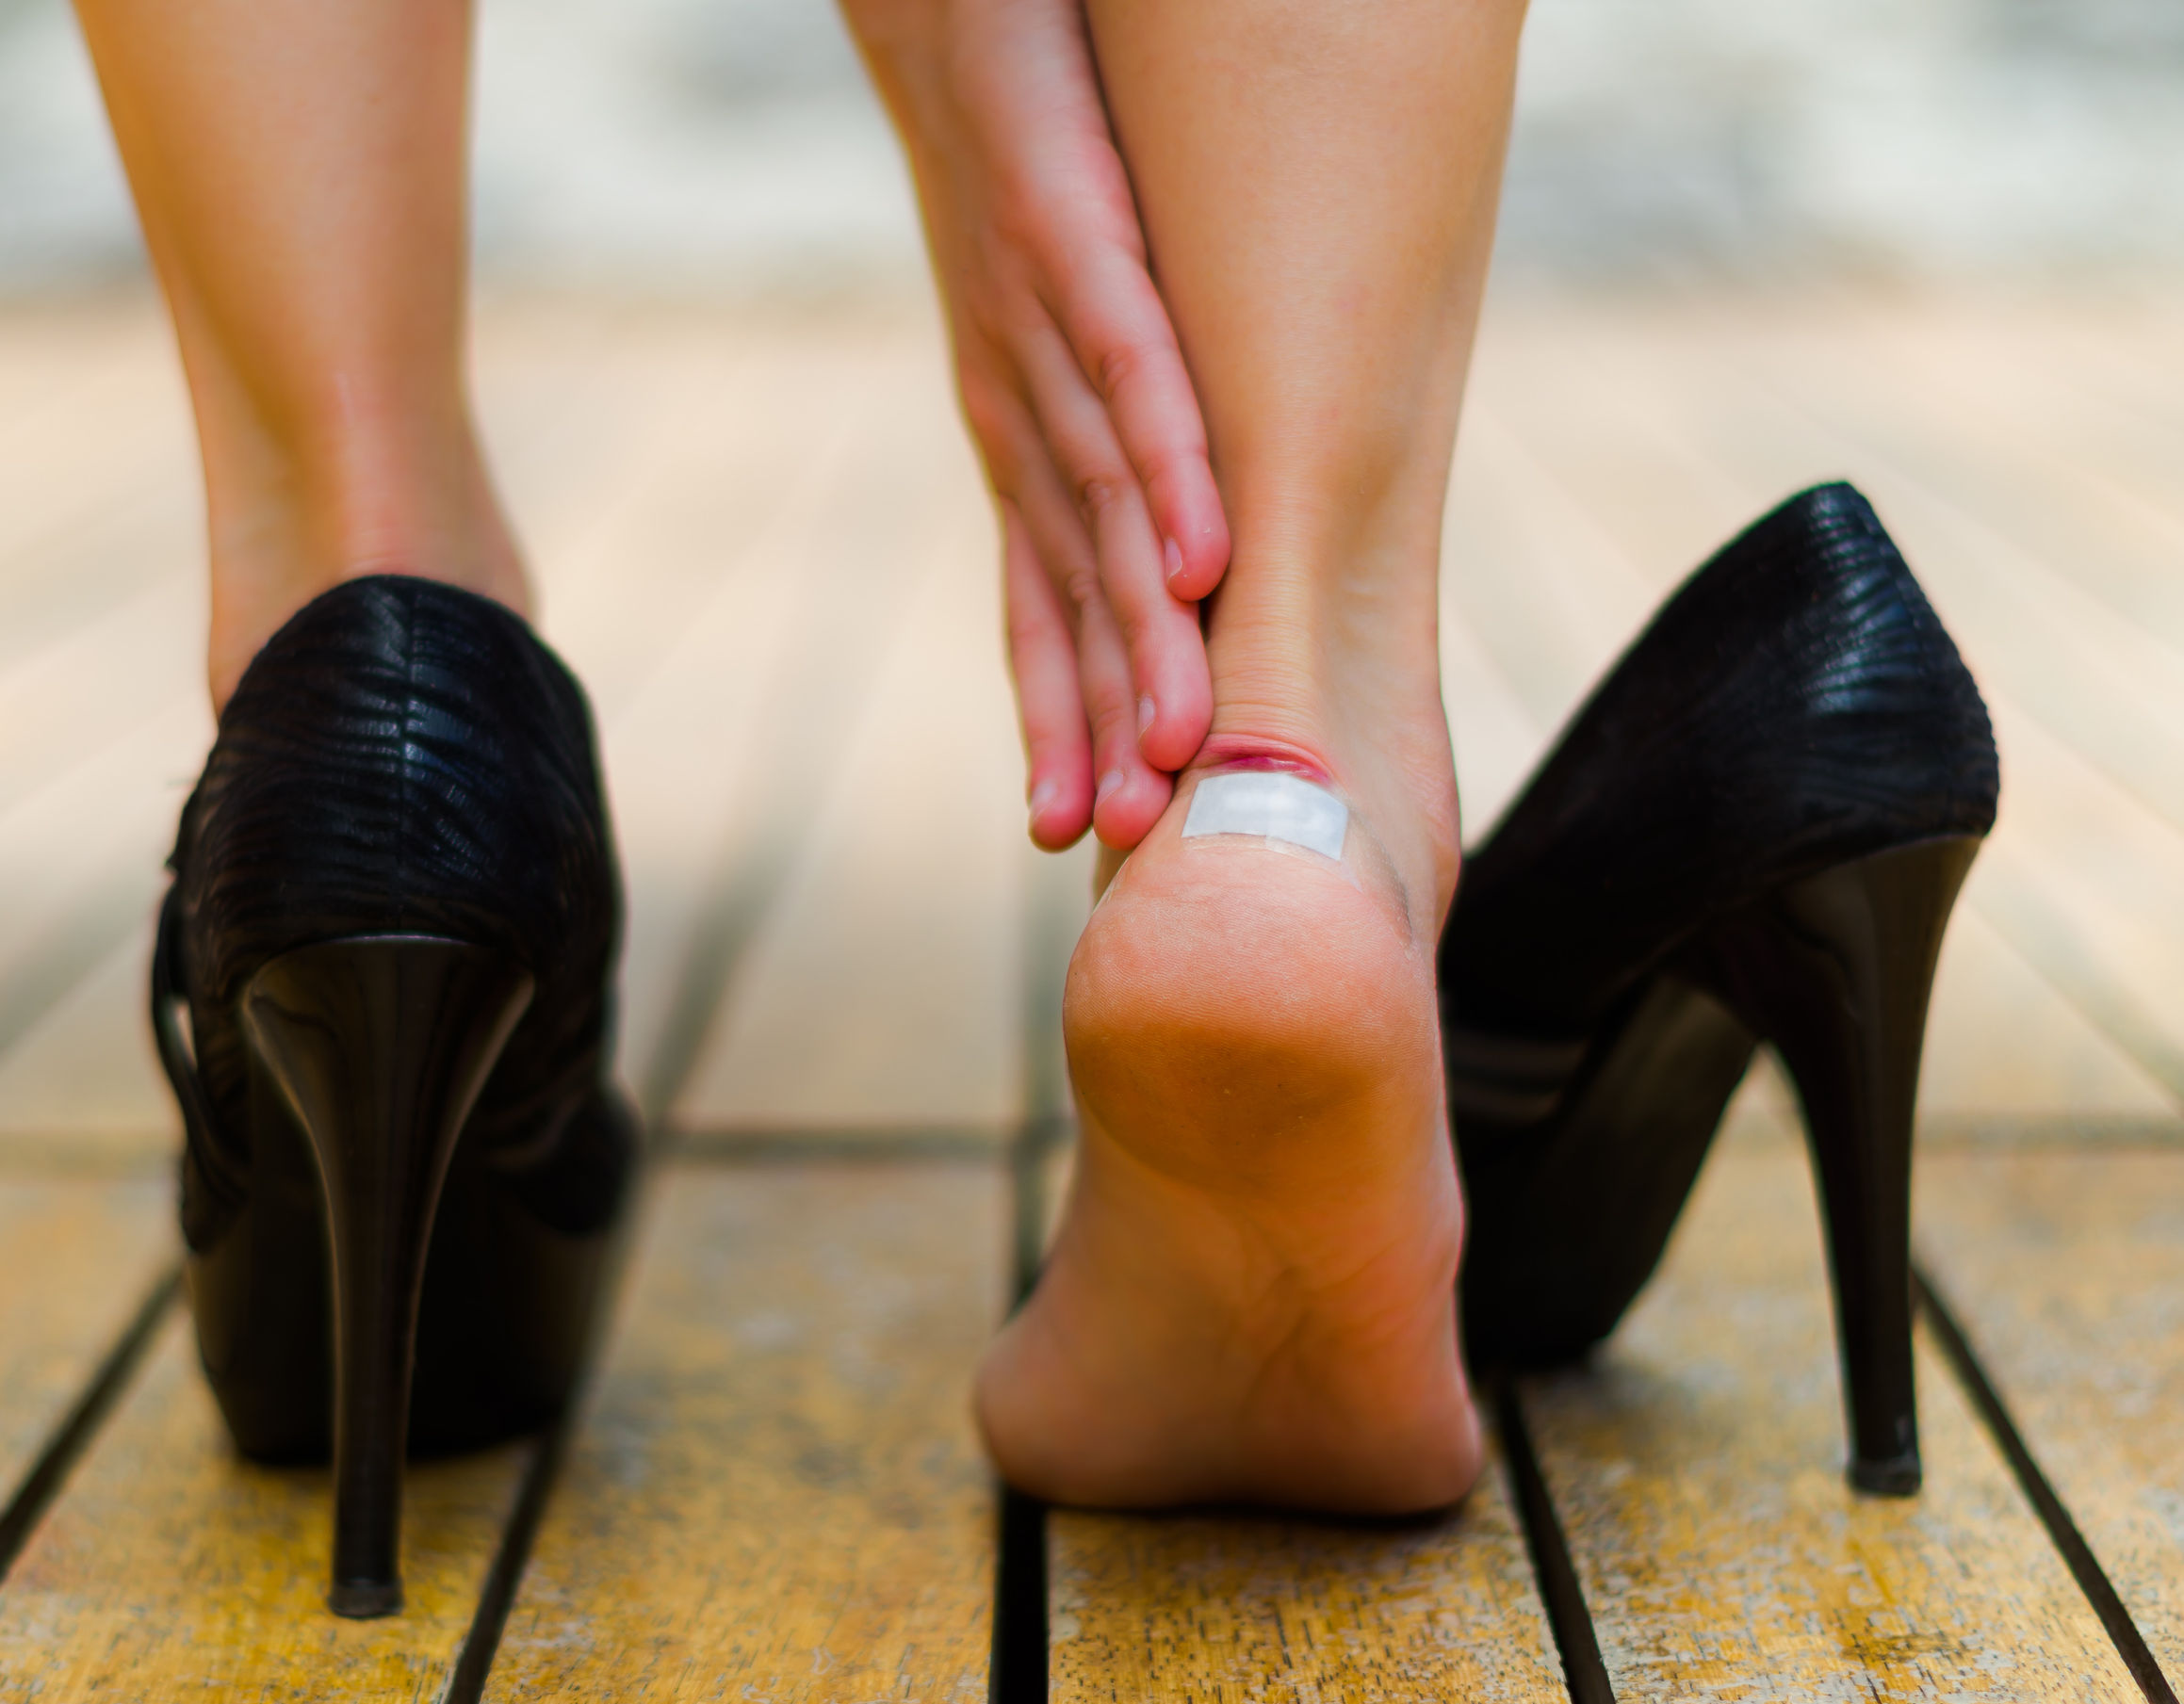 Blisters Crippling Your Feet? (7 steps to prevention and relief)